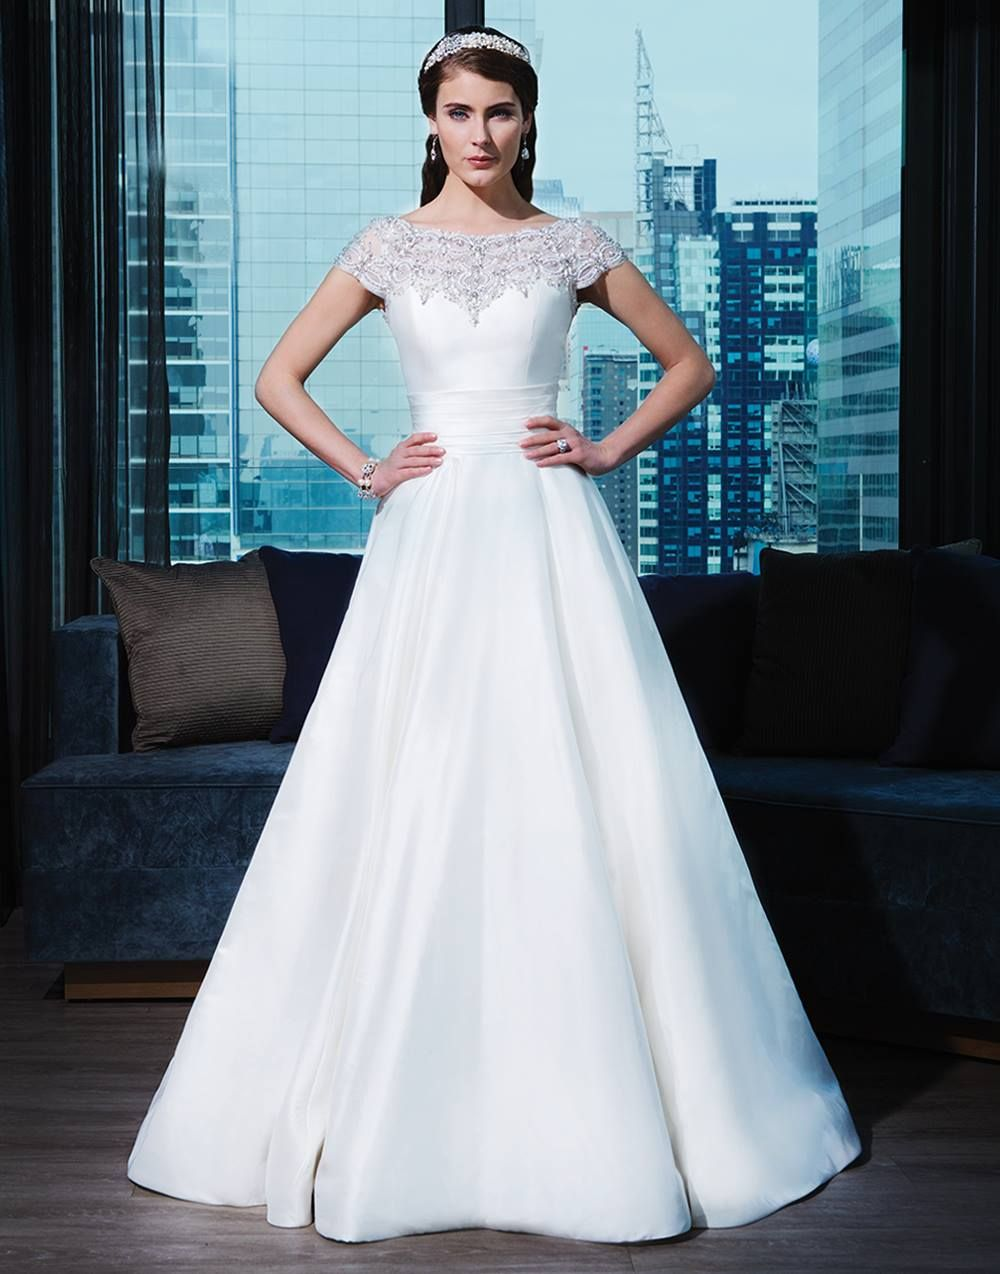 Unique Classy Wedding Gowns Pattern - All Wedding Dresses ...